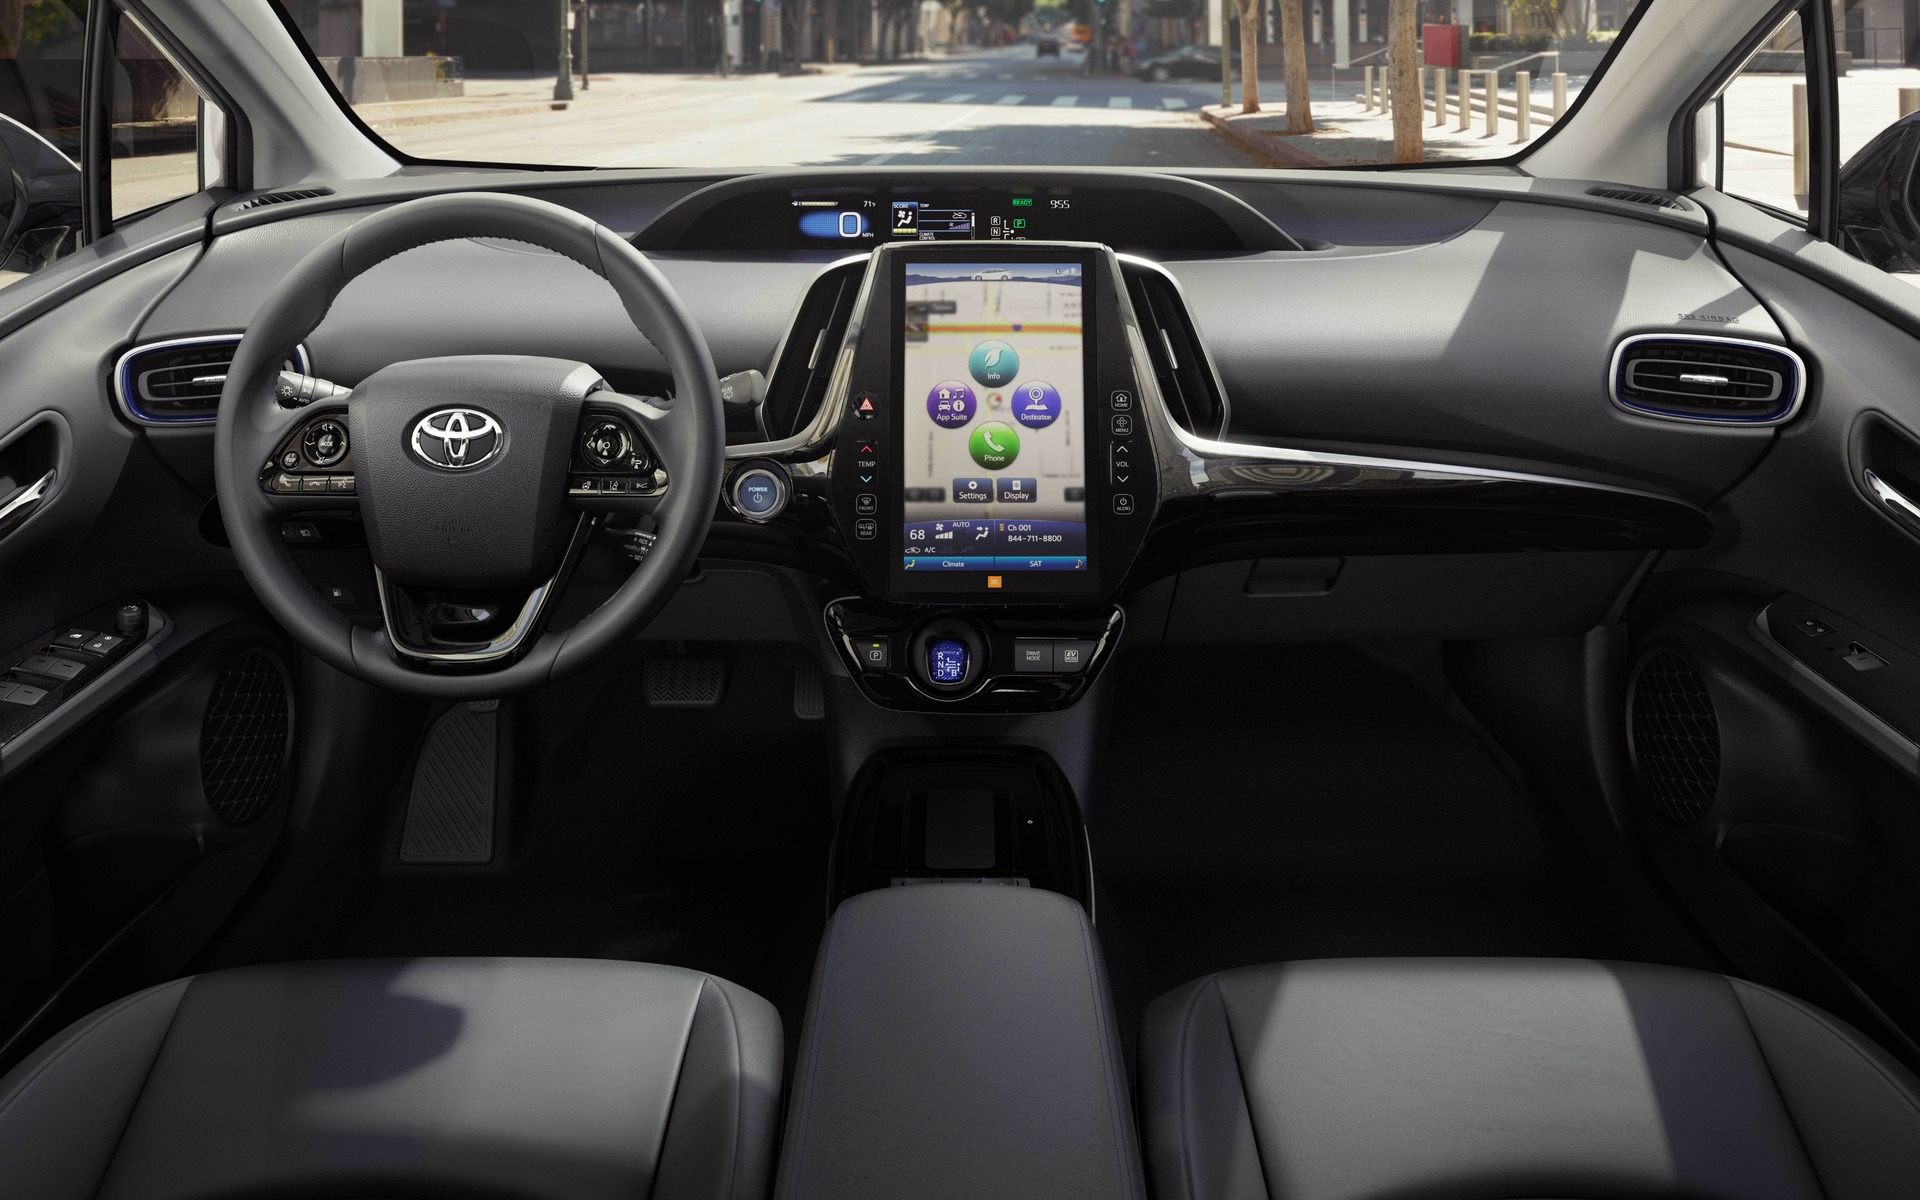 Five Things to Know About the 2020 Toyota Prius - The Car Guide